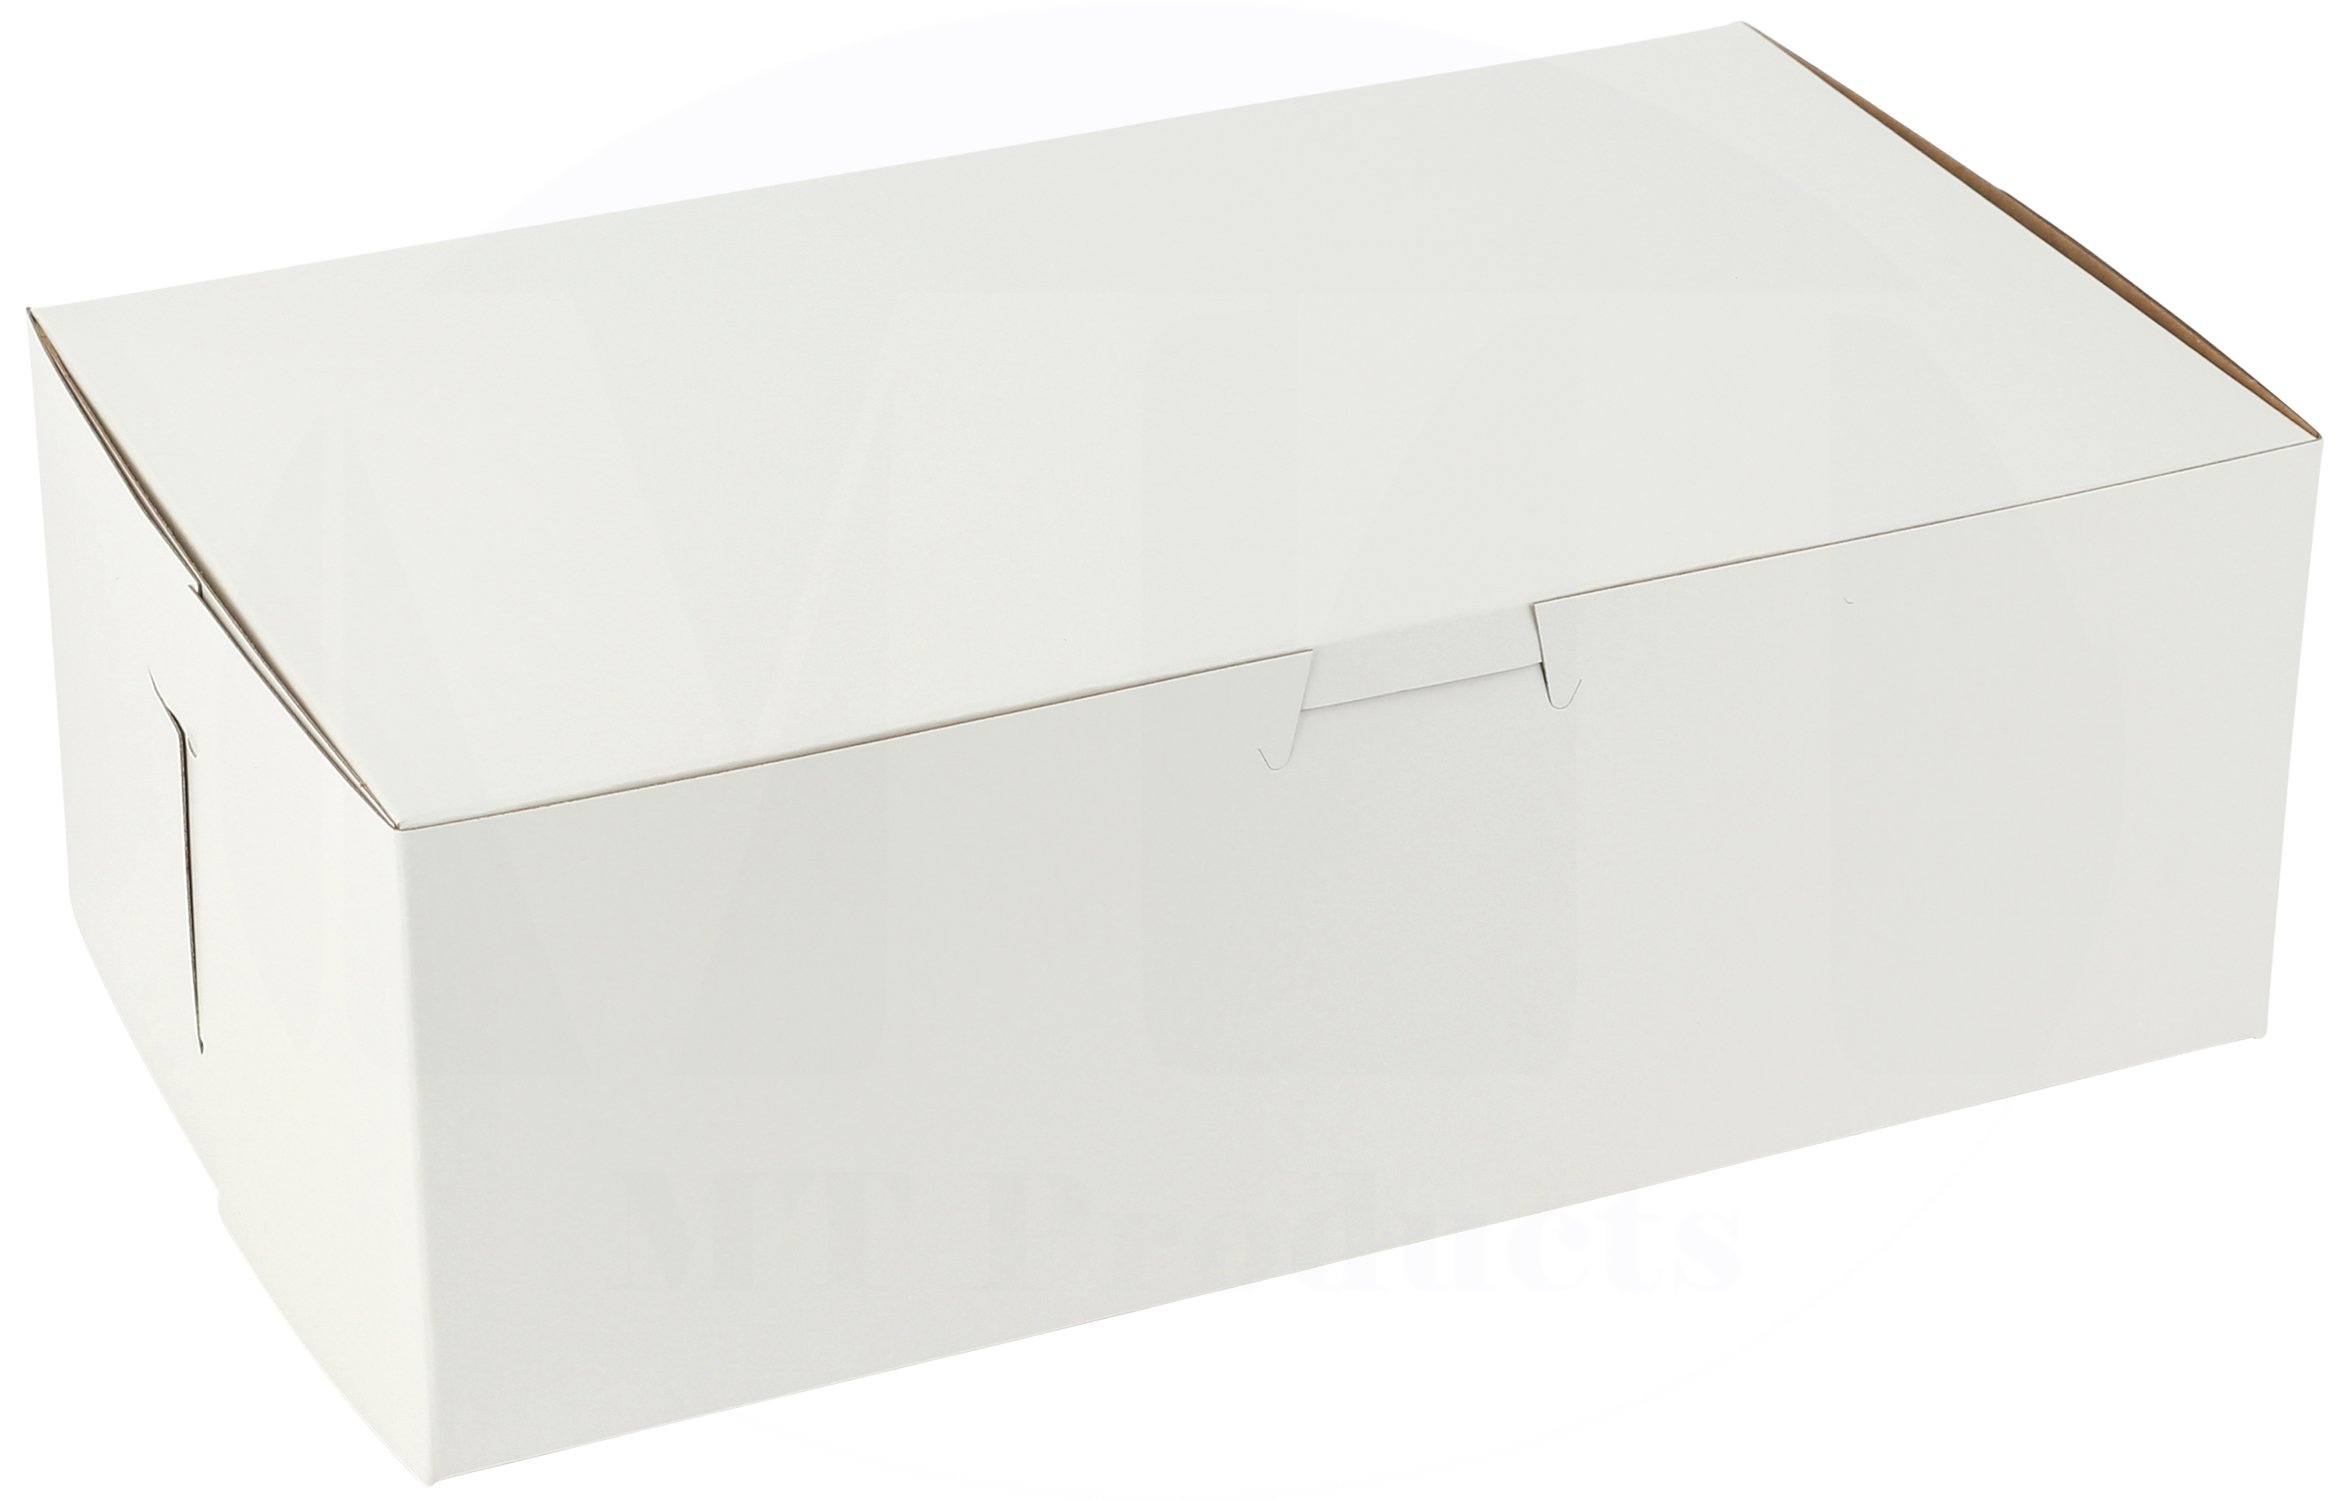 10'' Length x 6'' Width x 3 1/2'' Height Clay Coated Kraft Paperboard White Non-Window Lock Corner Bakery Box by MT Products (Pack of 15)